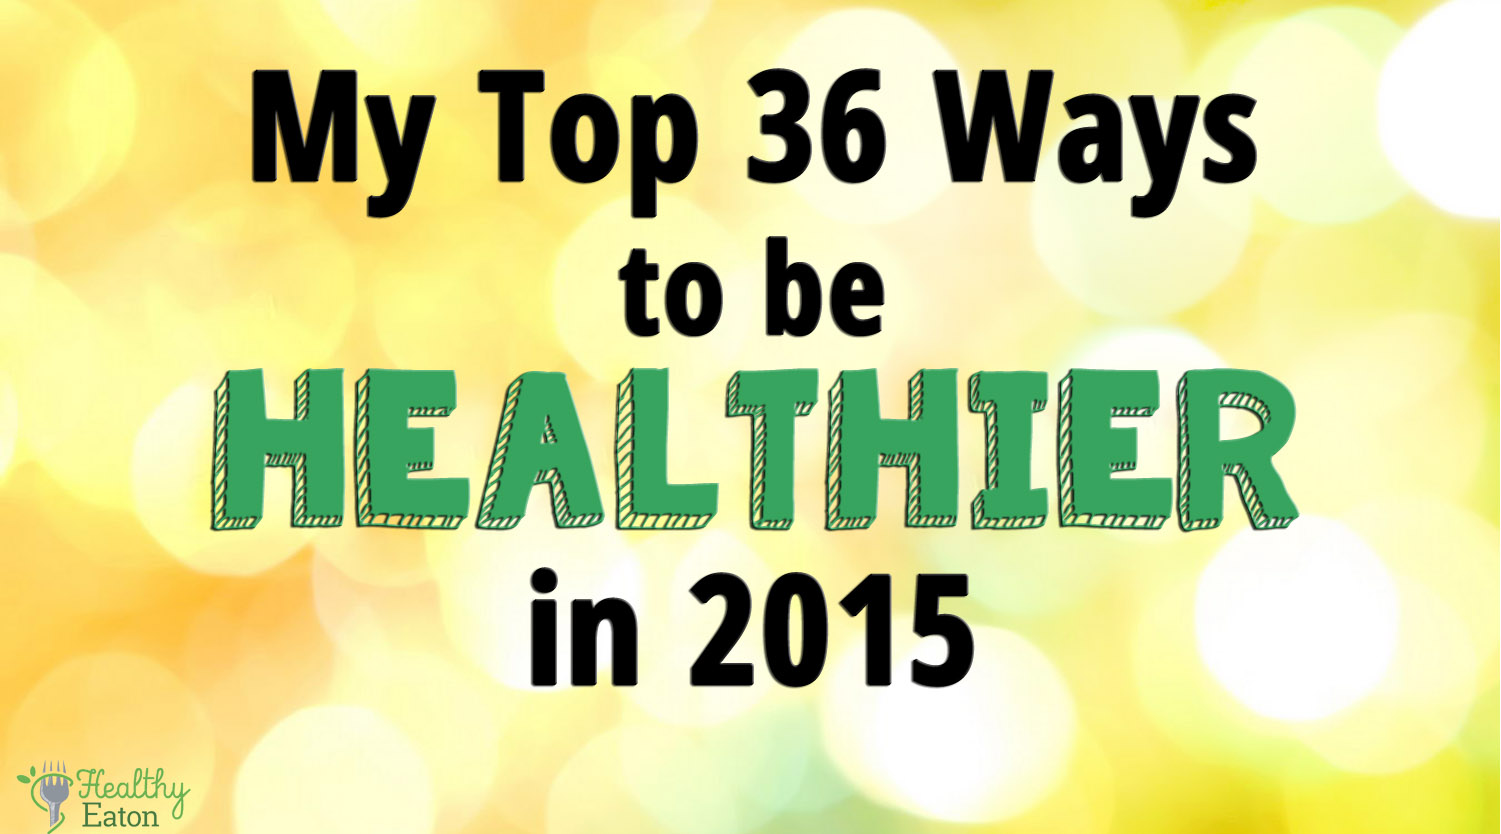 My Top 36 Ways to be Healthier in 2015